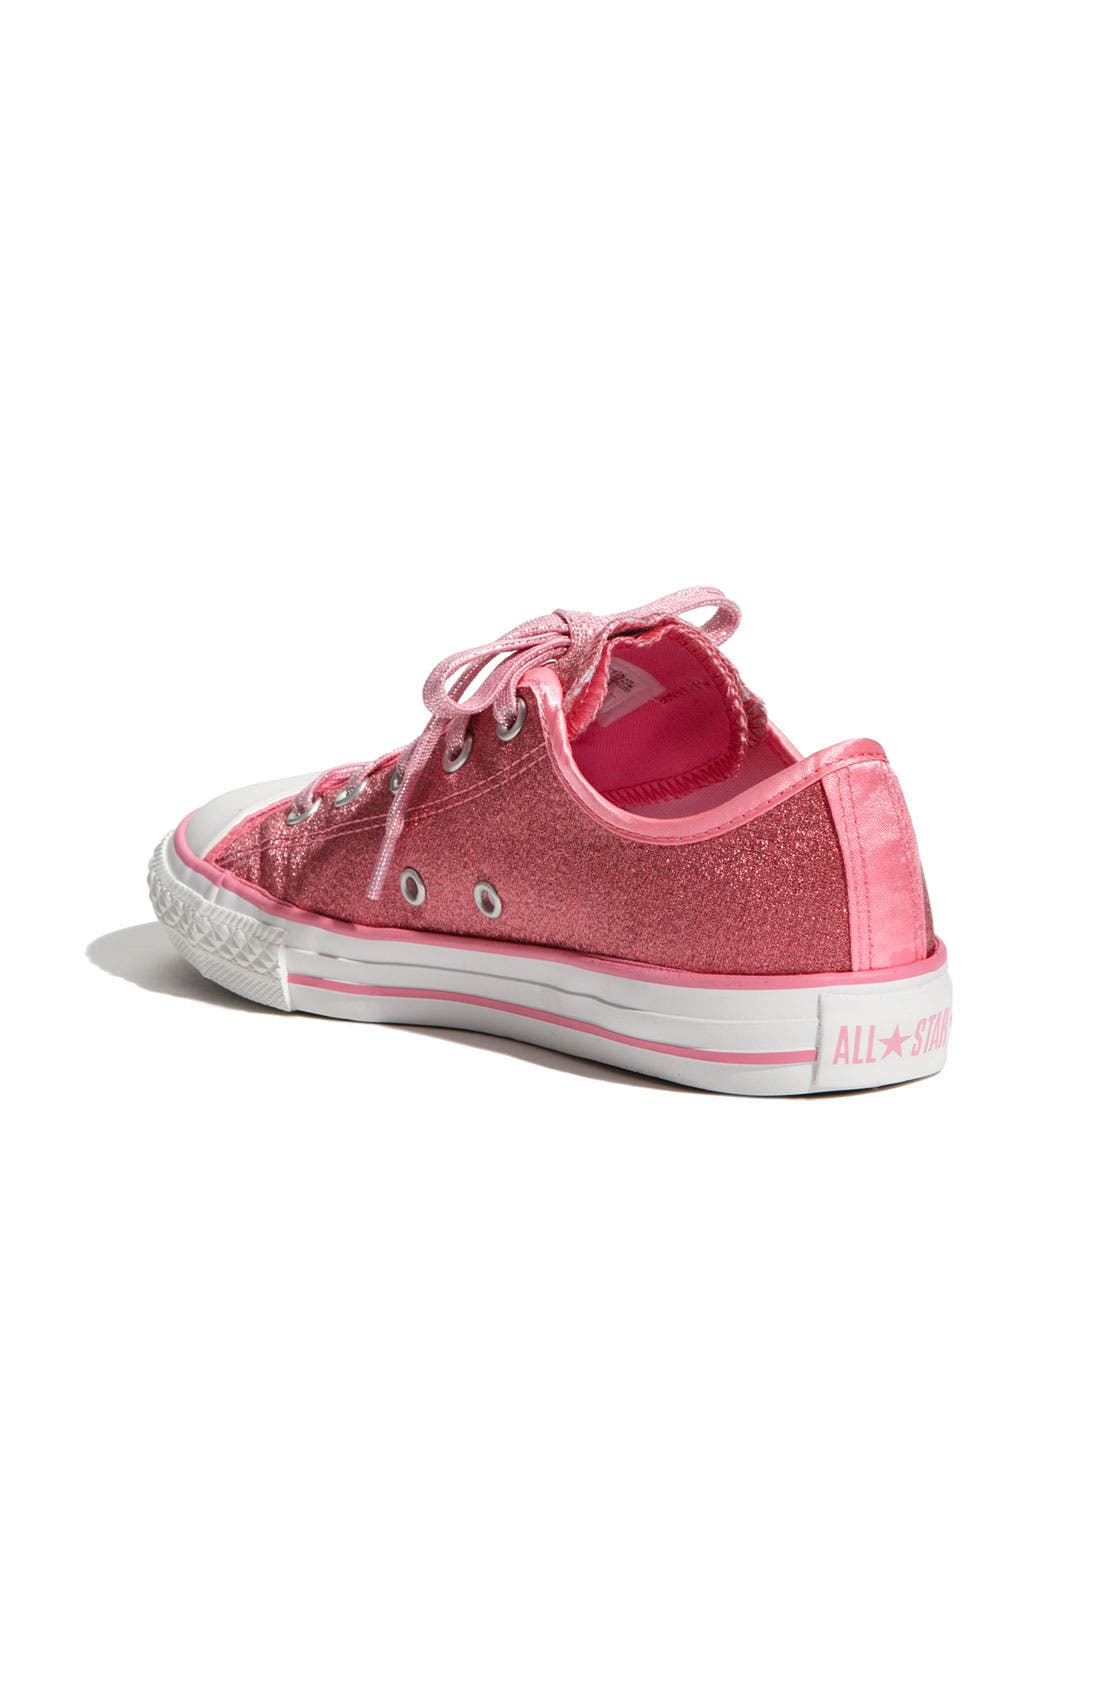 Alternate Image 2  - Converse Double Tongue Sneaker (Toddler, Little Kid & Big Kid)